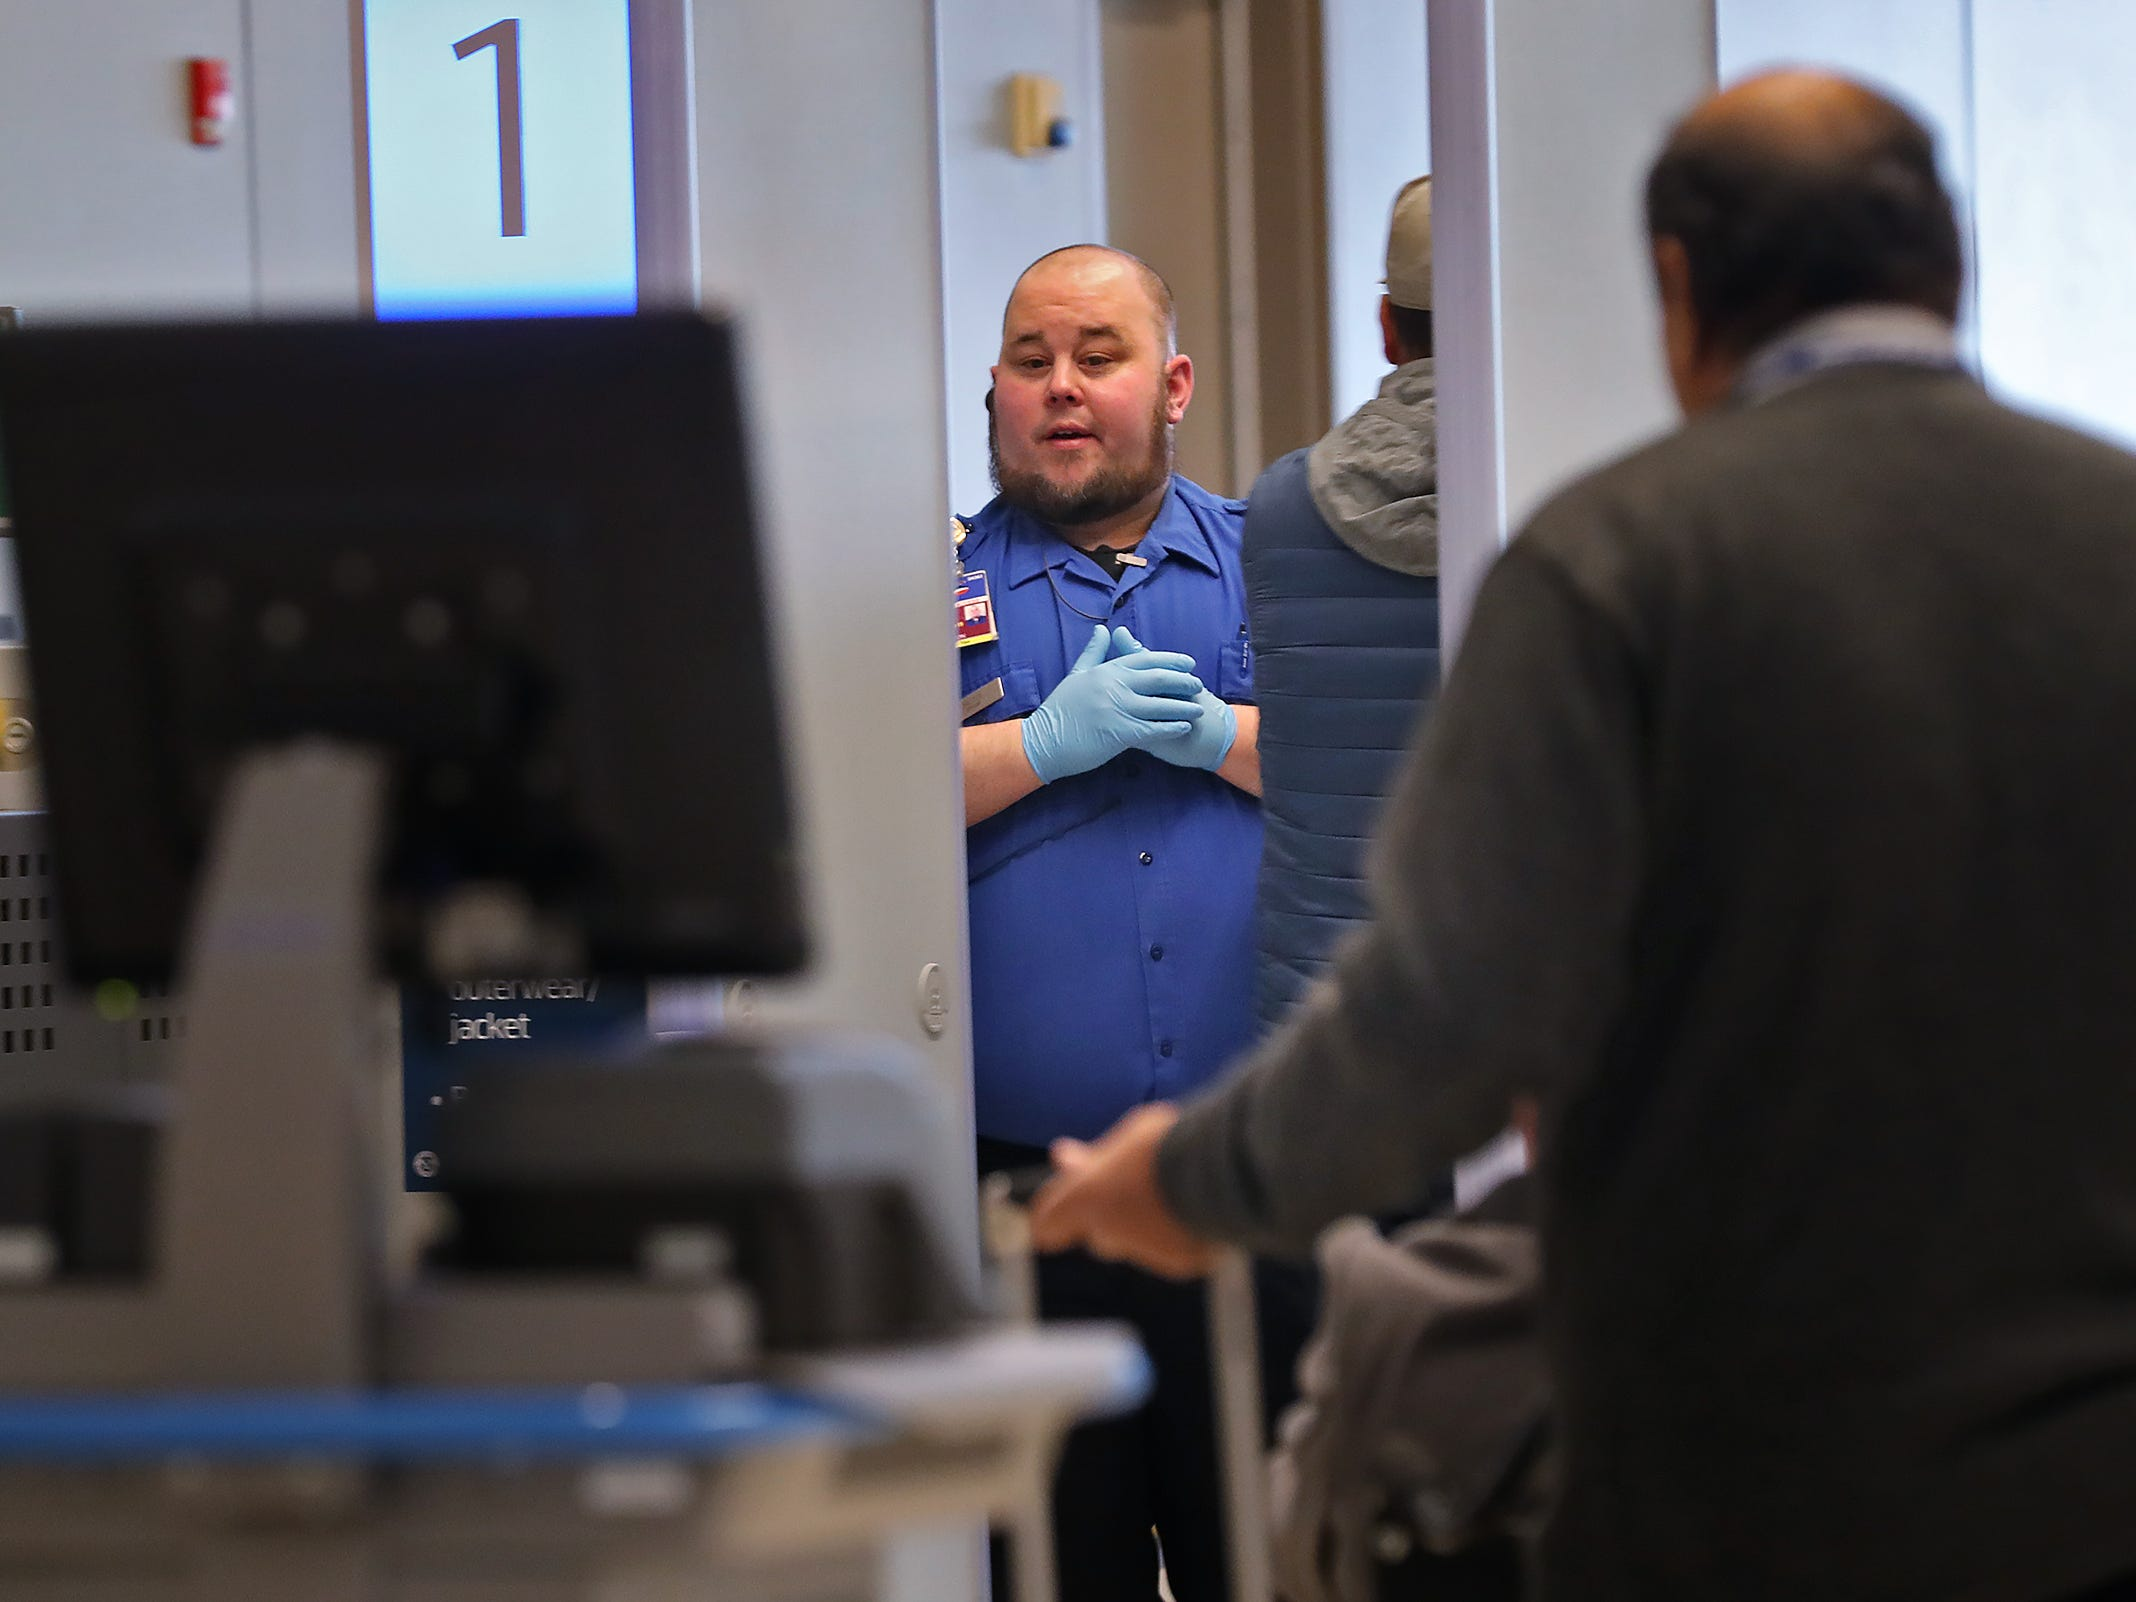 A TSA agent instructs a traveler going through security at the Indianapolis International Airport, Tuesday, Jan. 15, 2019.